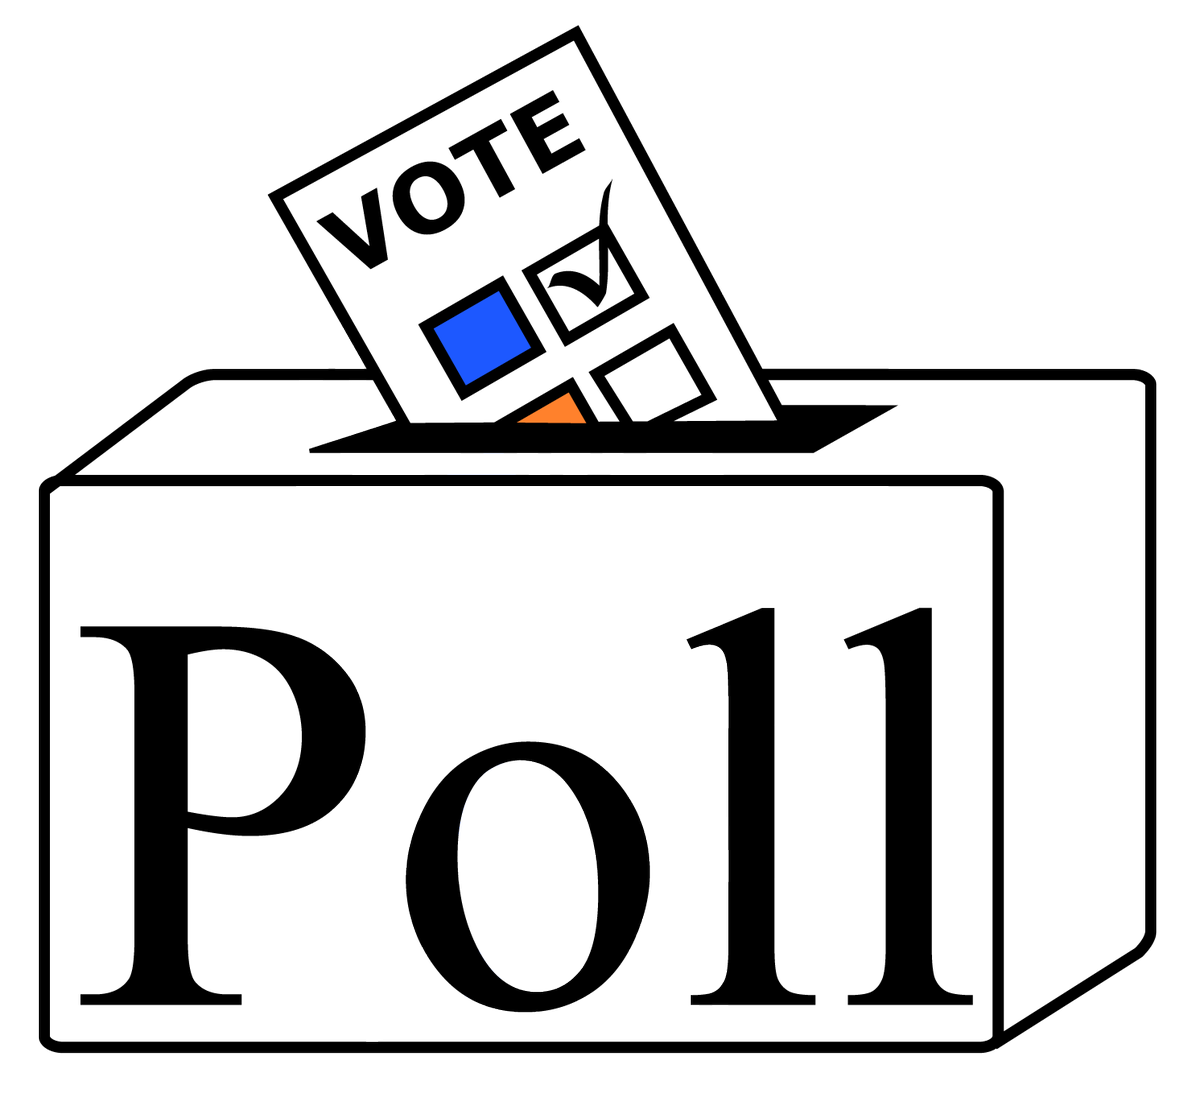 graphic transparent stock Remember to vote clipart. Poll jan